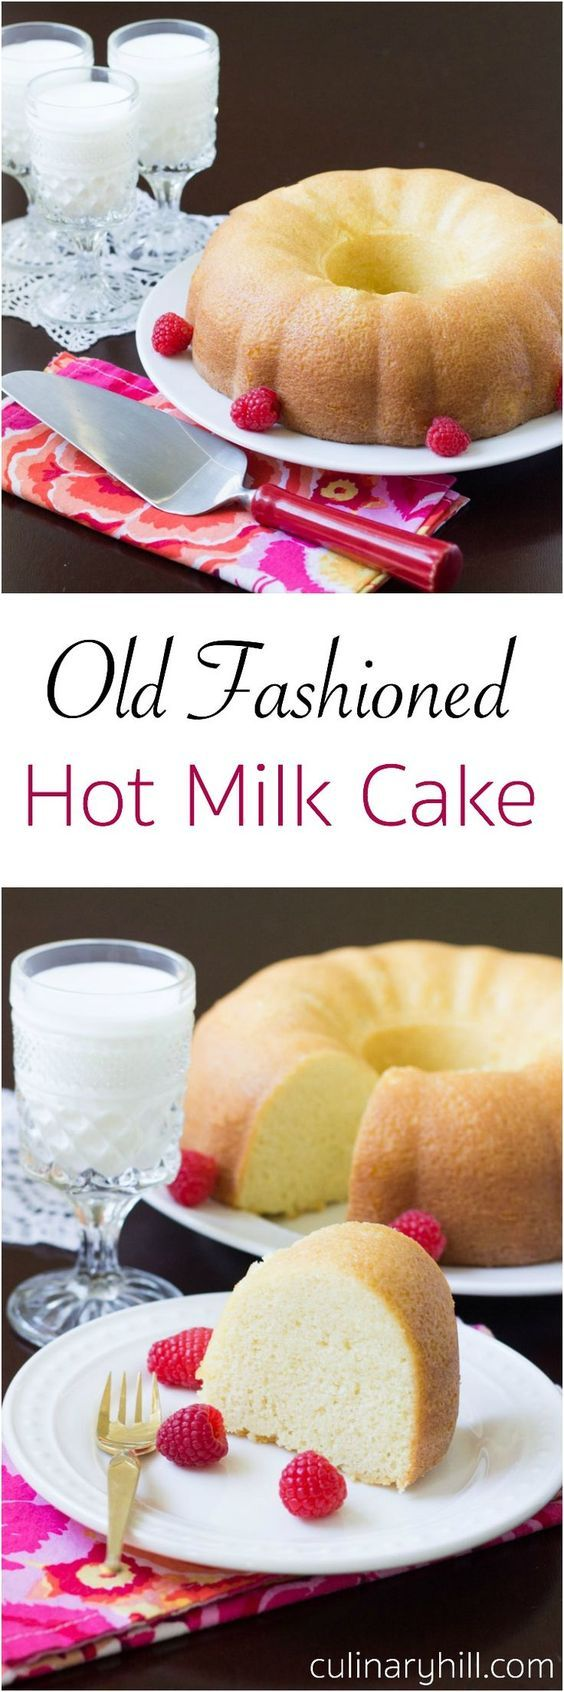 Old Fashioned Hot Milk Cake is a light and fluffy vanilla cake. This…